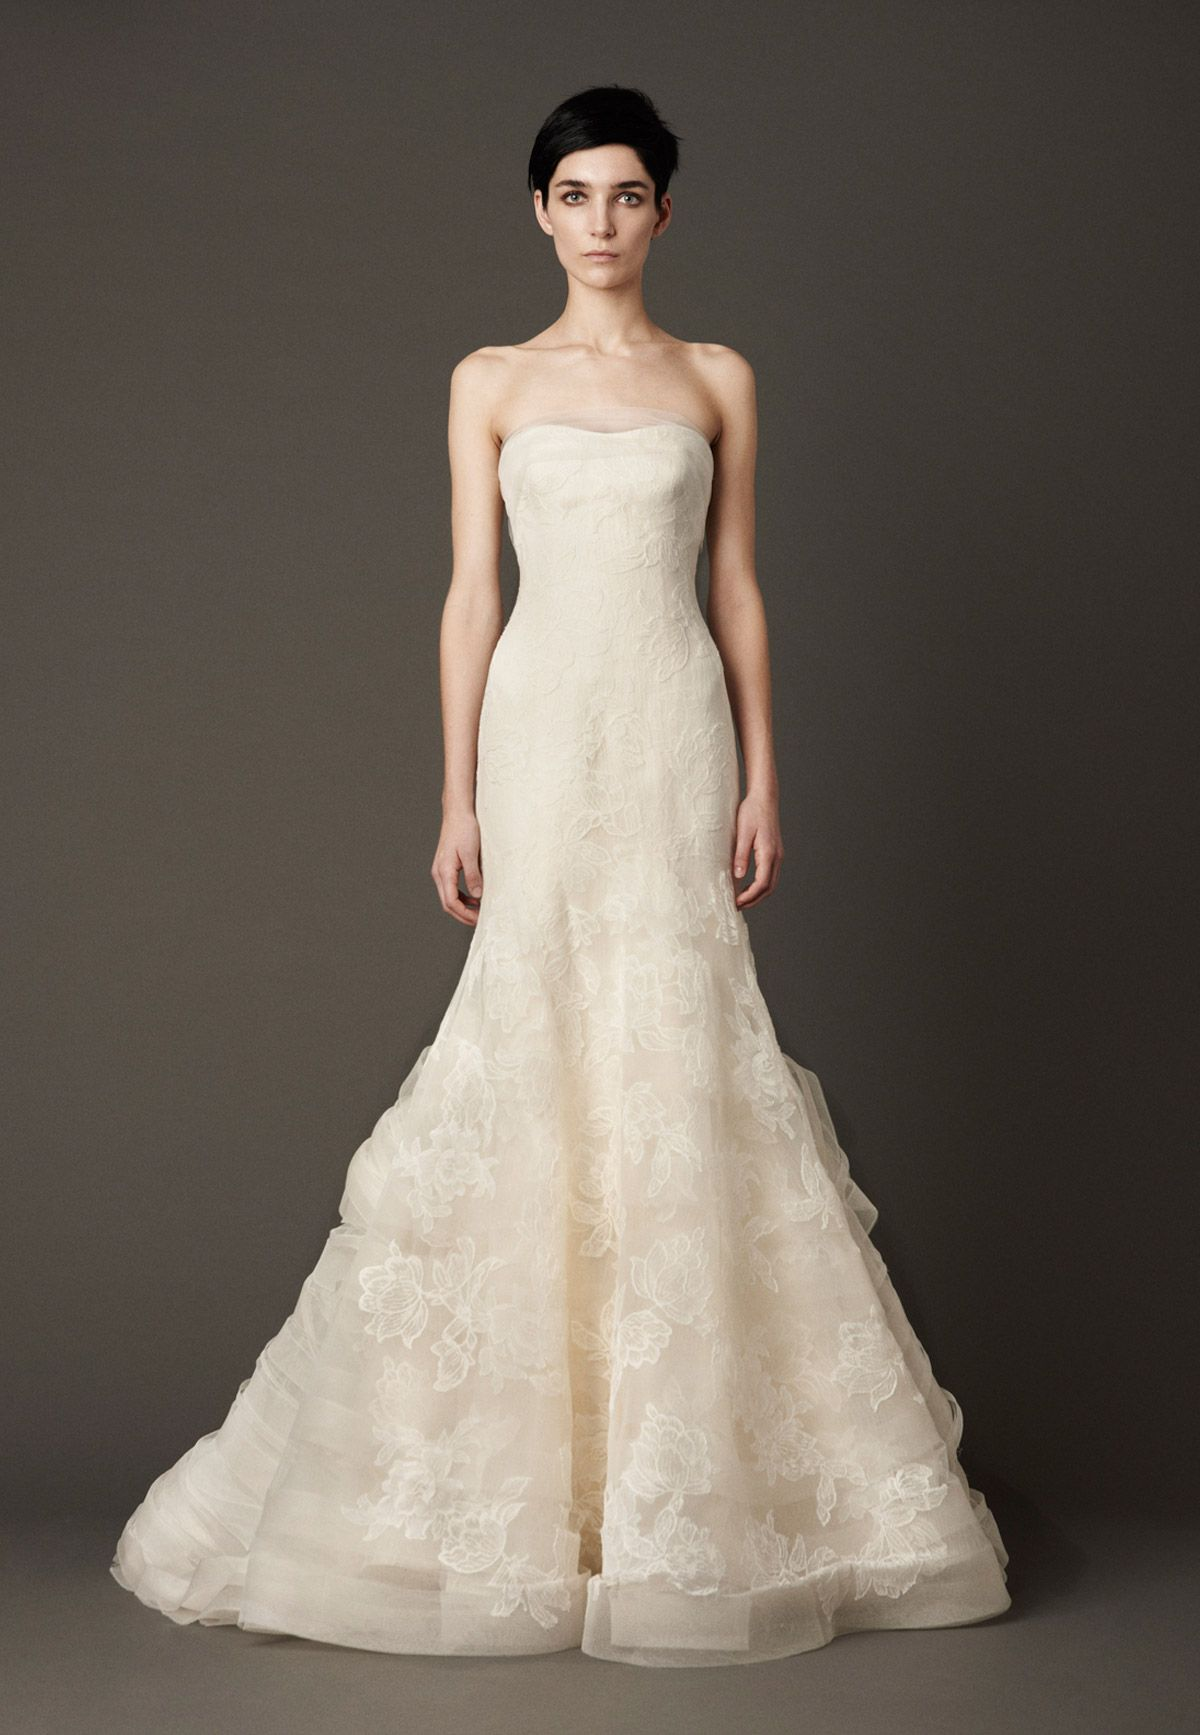 Vera wang lace wedding dress  Vera Wang Leda Size  Wedding Dress  Bridal gowns Wedding dress